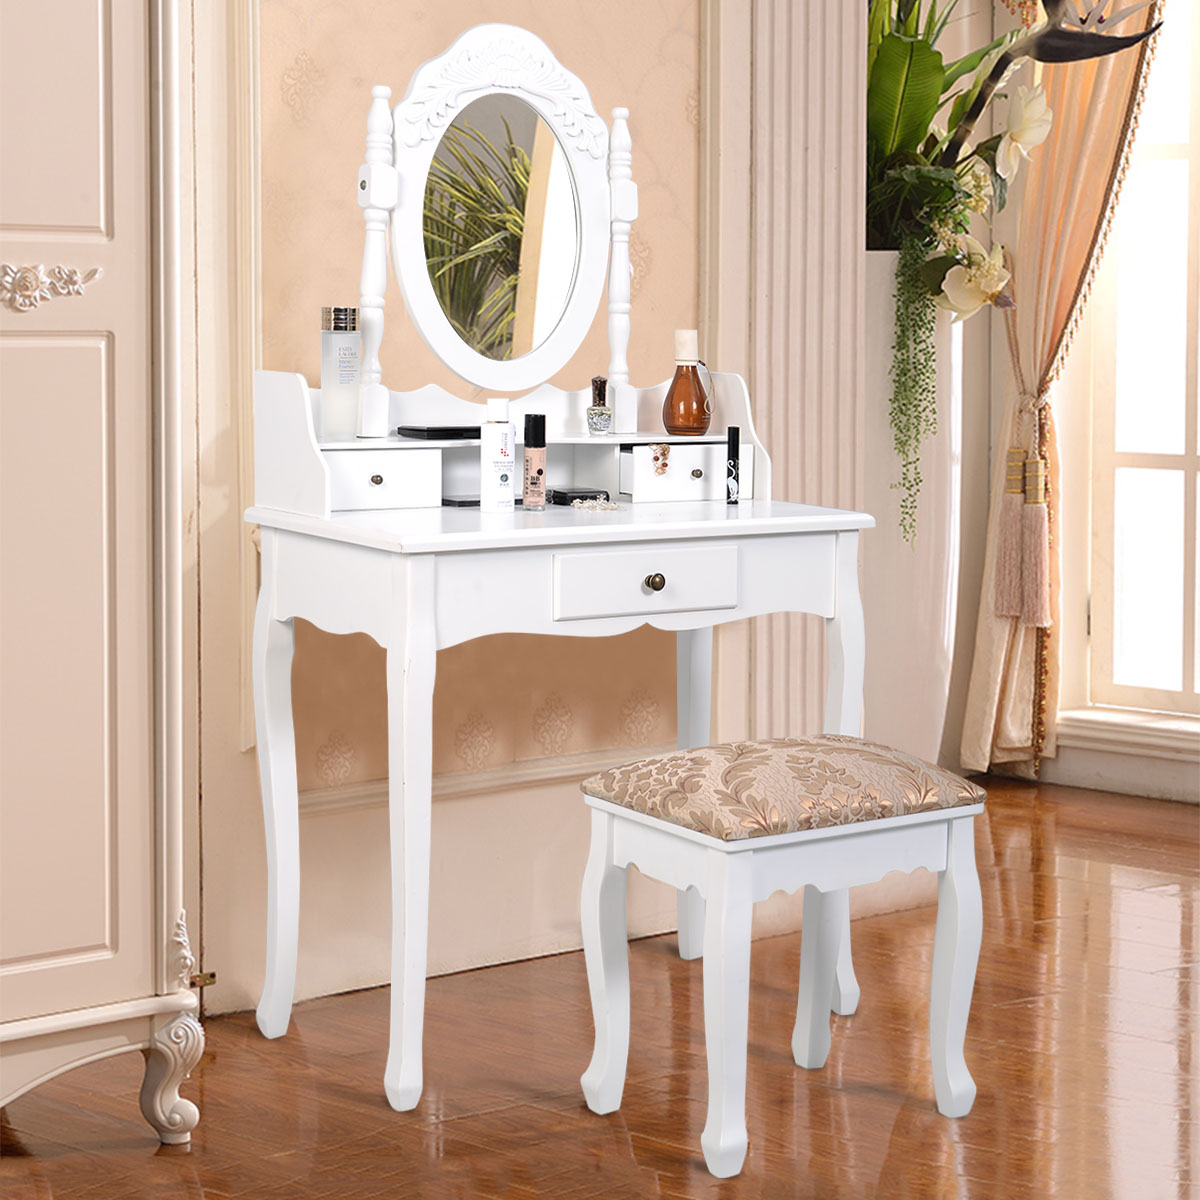 Popular best choice products bathroom vanity table set w/ stool makeup hair dressing jcvgrmy